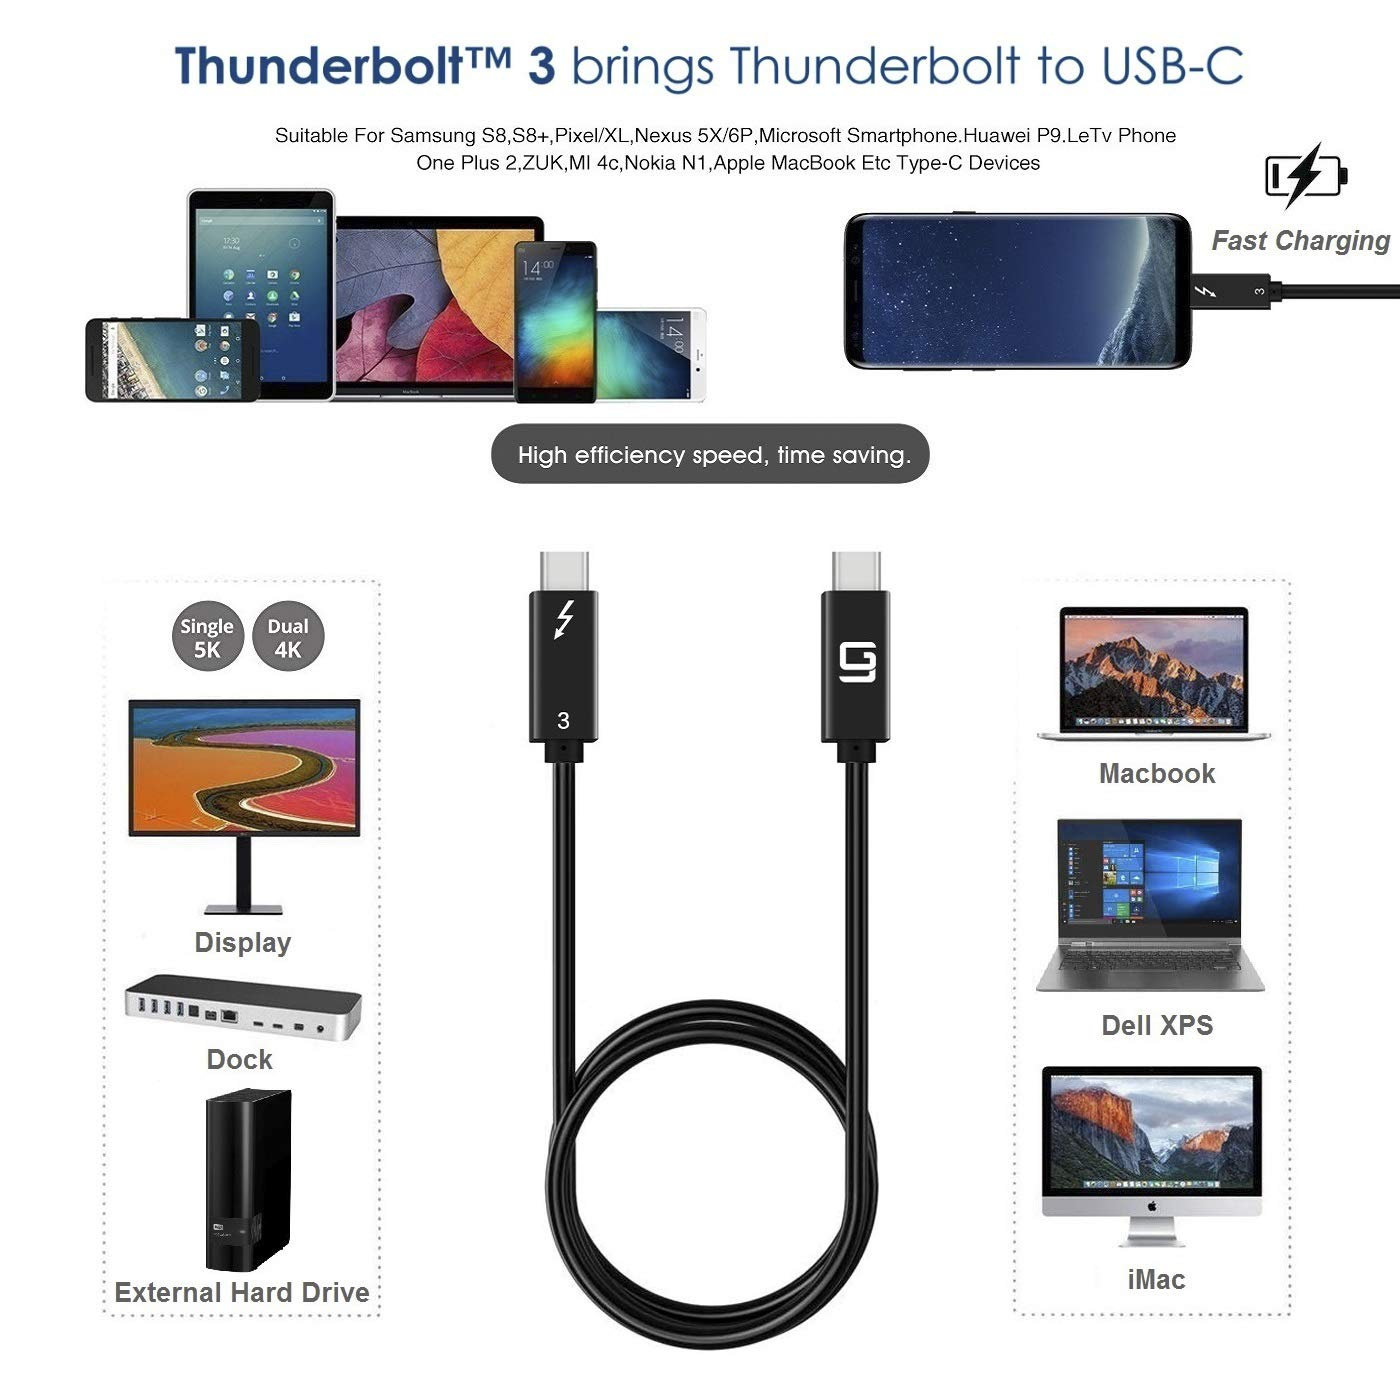 3.3ft//20Gbps SuperSpeed Dual 4k or Single 5k @60hz Display GodSpin USB-C to USB-C Cable USB 3.1 /& 3.2 Compatible USB Type-C to USB Type-C Certified 100W Power Nylon Braided 20Gbps